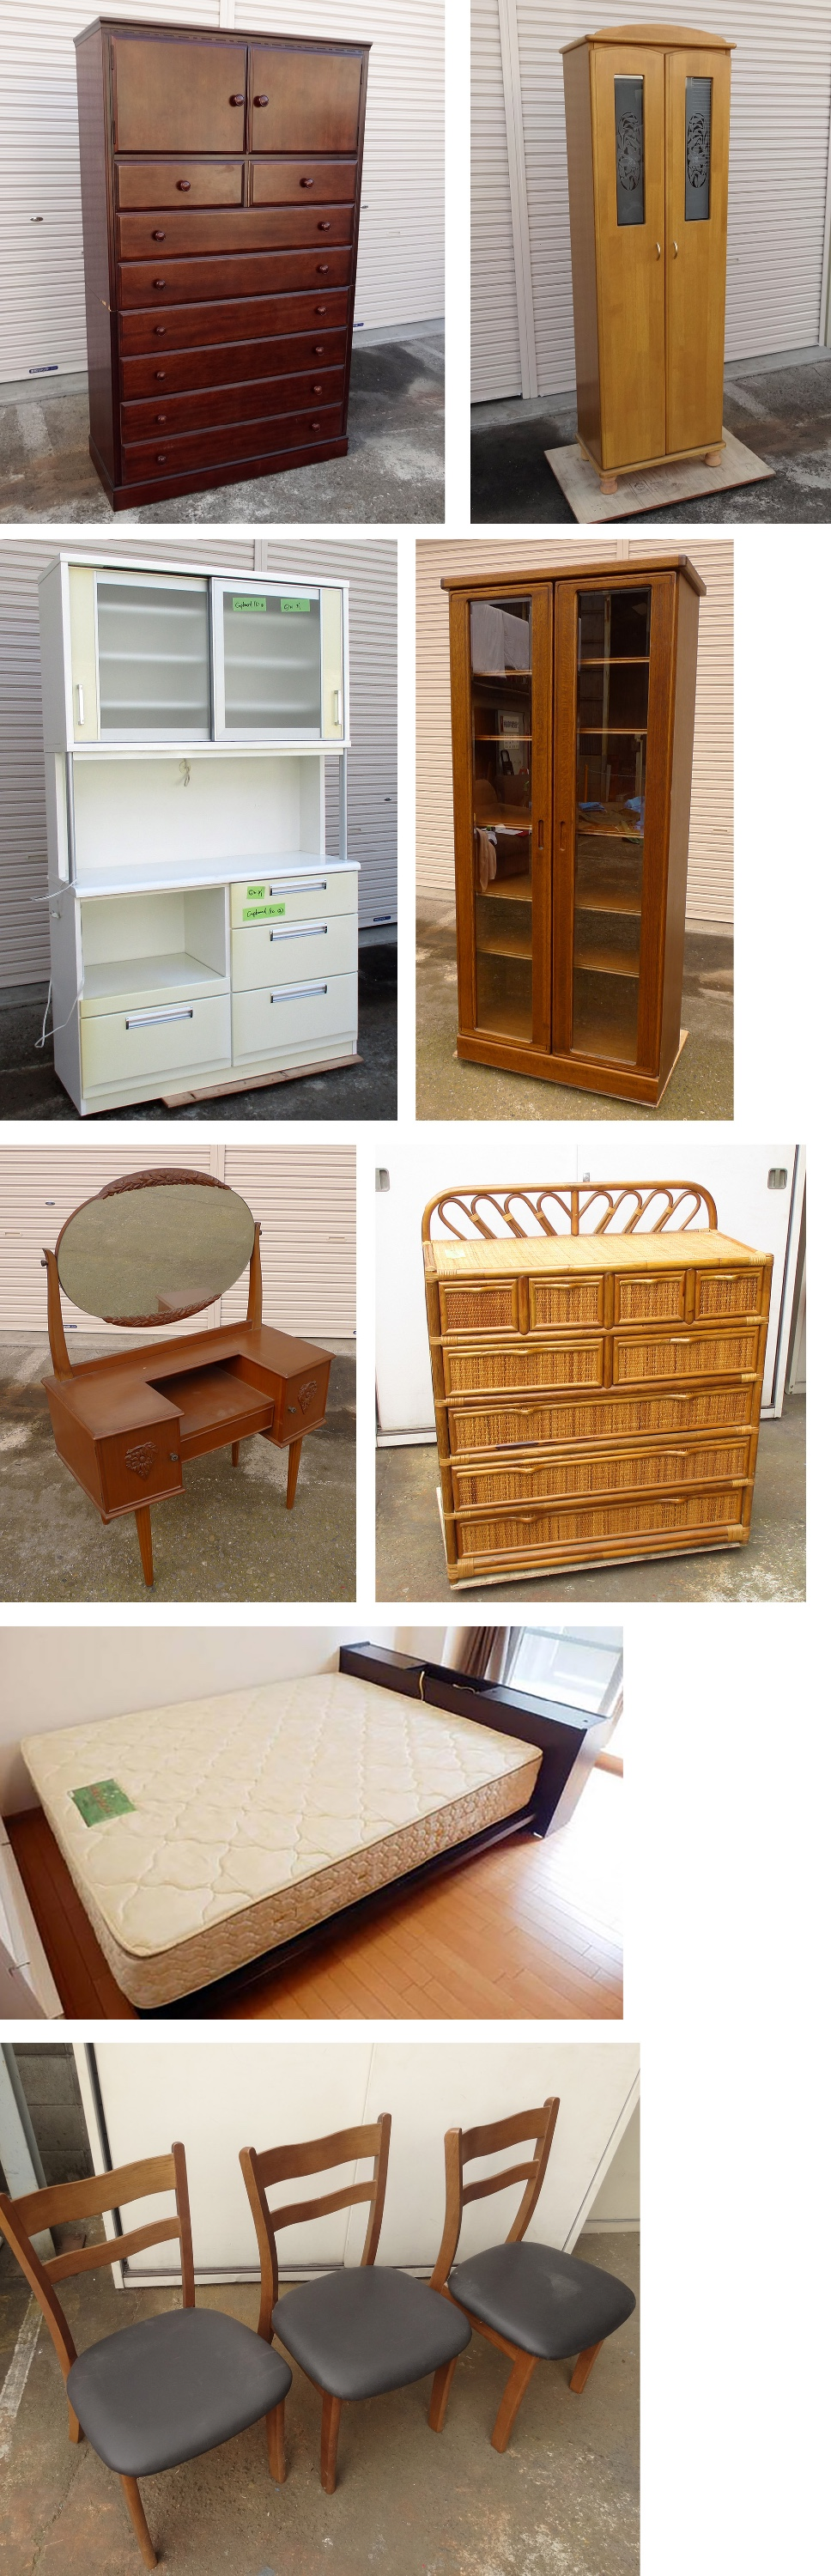 Long lasting Used Japanese Chair Furniture the Drawers The Beds